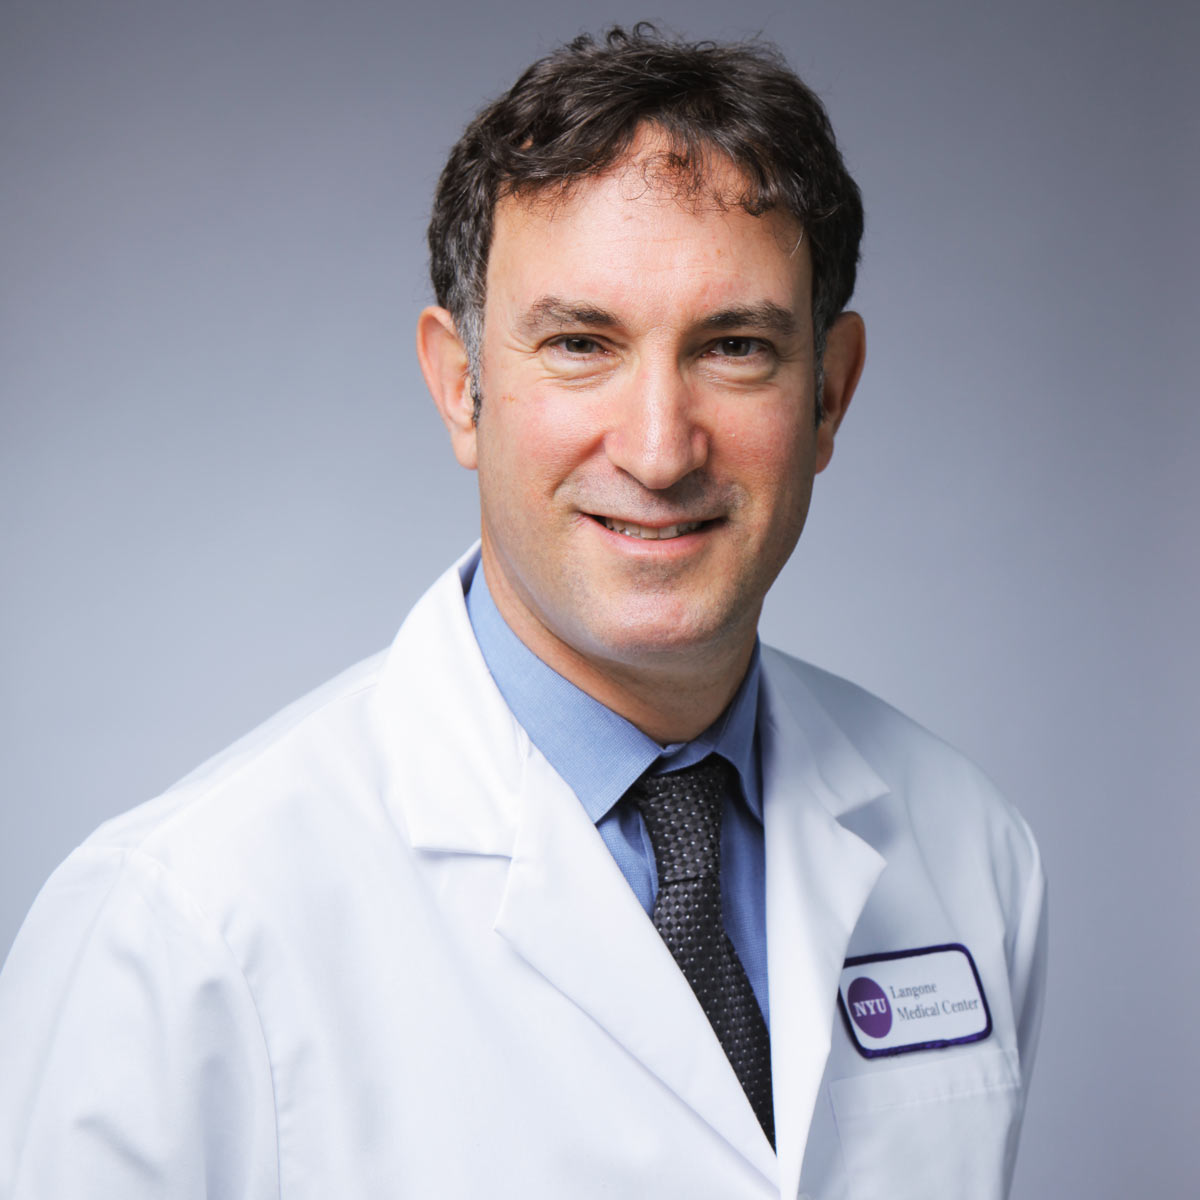 Jeffrey Cohen at [NYU Langone Medical Center]